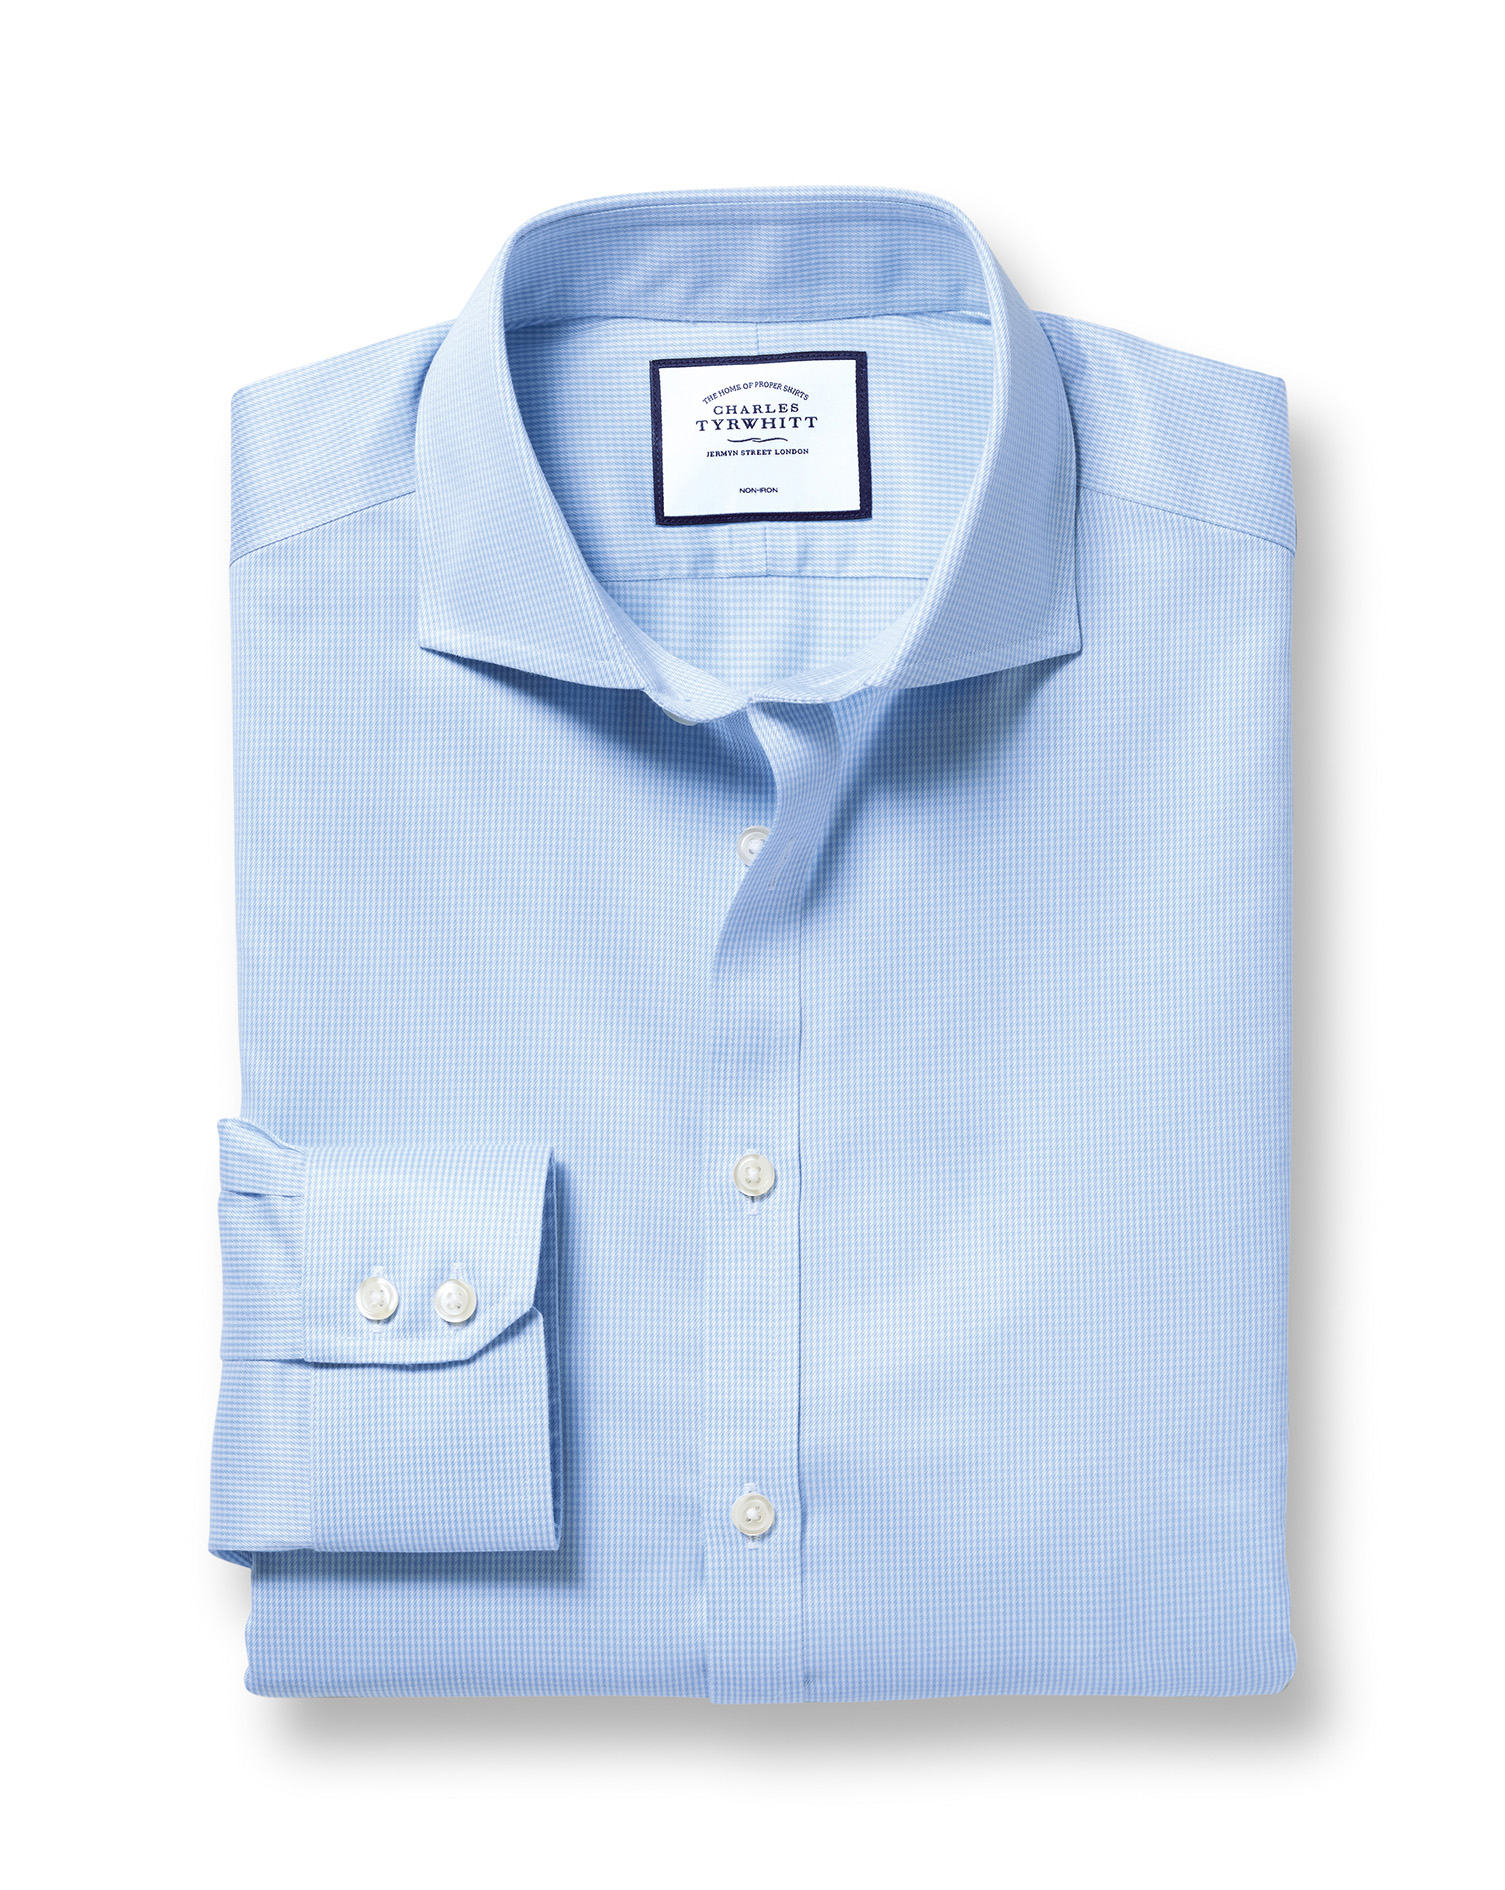 Extra Slim Fit Cutaway Non-Iron Puppytooth Sky Blue Cotton Formal Shirt Single Cuff Size 17.5/34 by